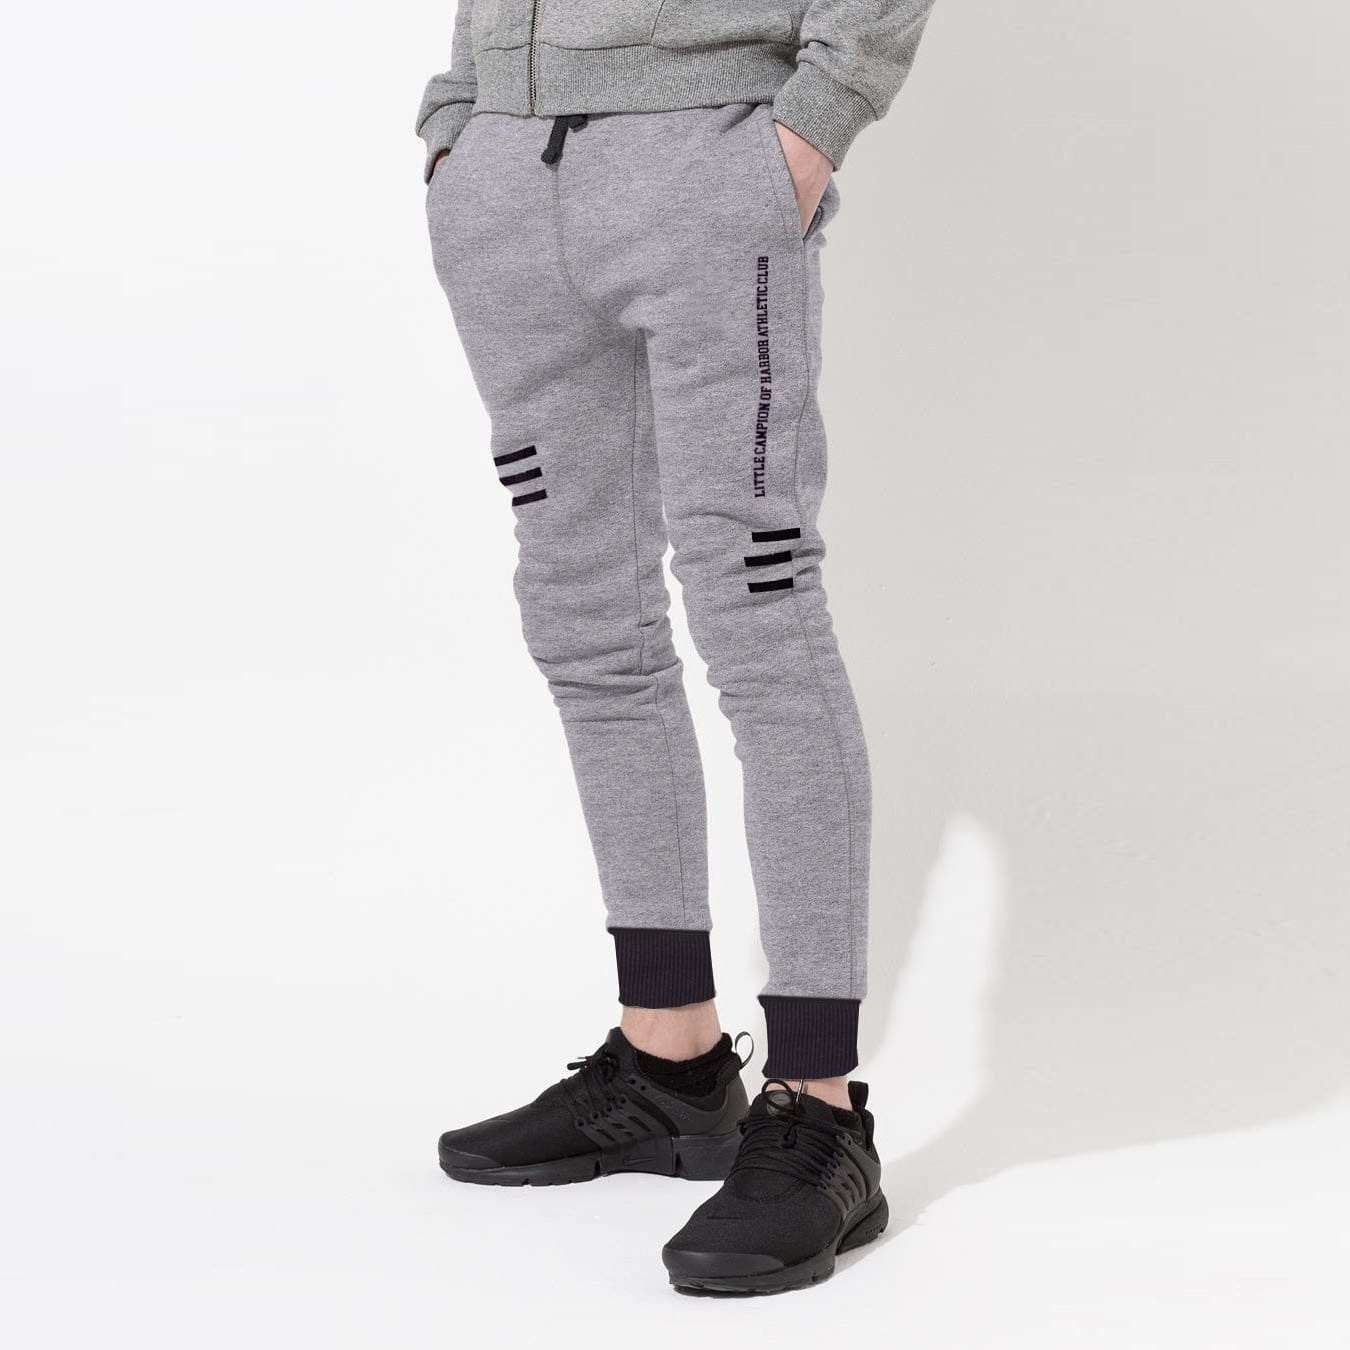 Stone Harbor Kid's Jogger Grey Marl / 4-5 Years Stone harbor Little Champion Ringer Close bottom Jogger Pants